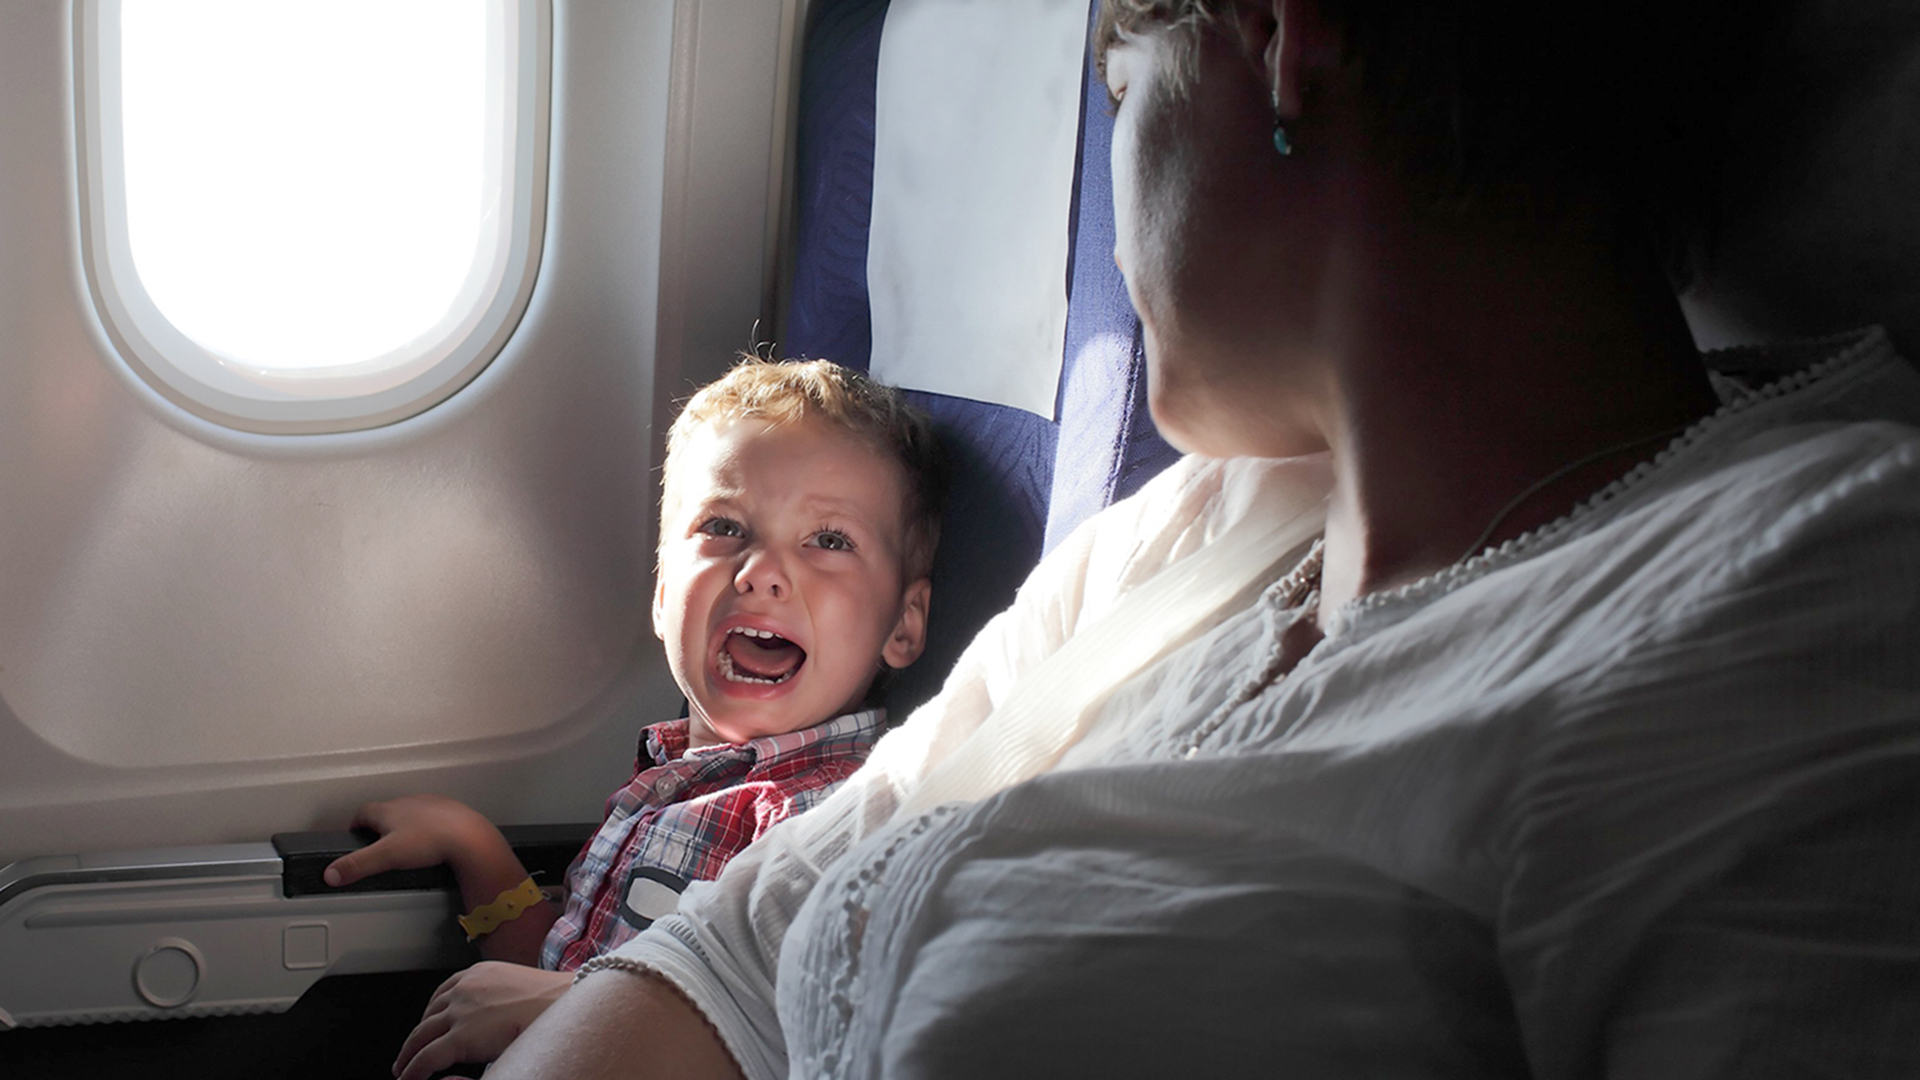 How to stop tantrums and crying on plane